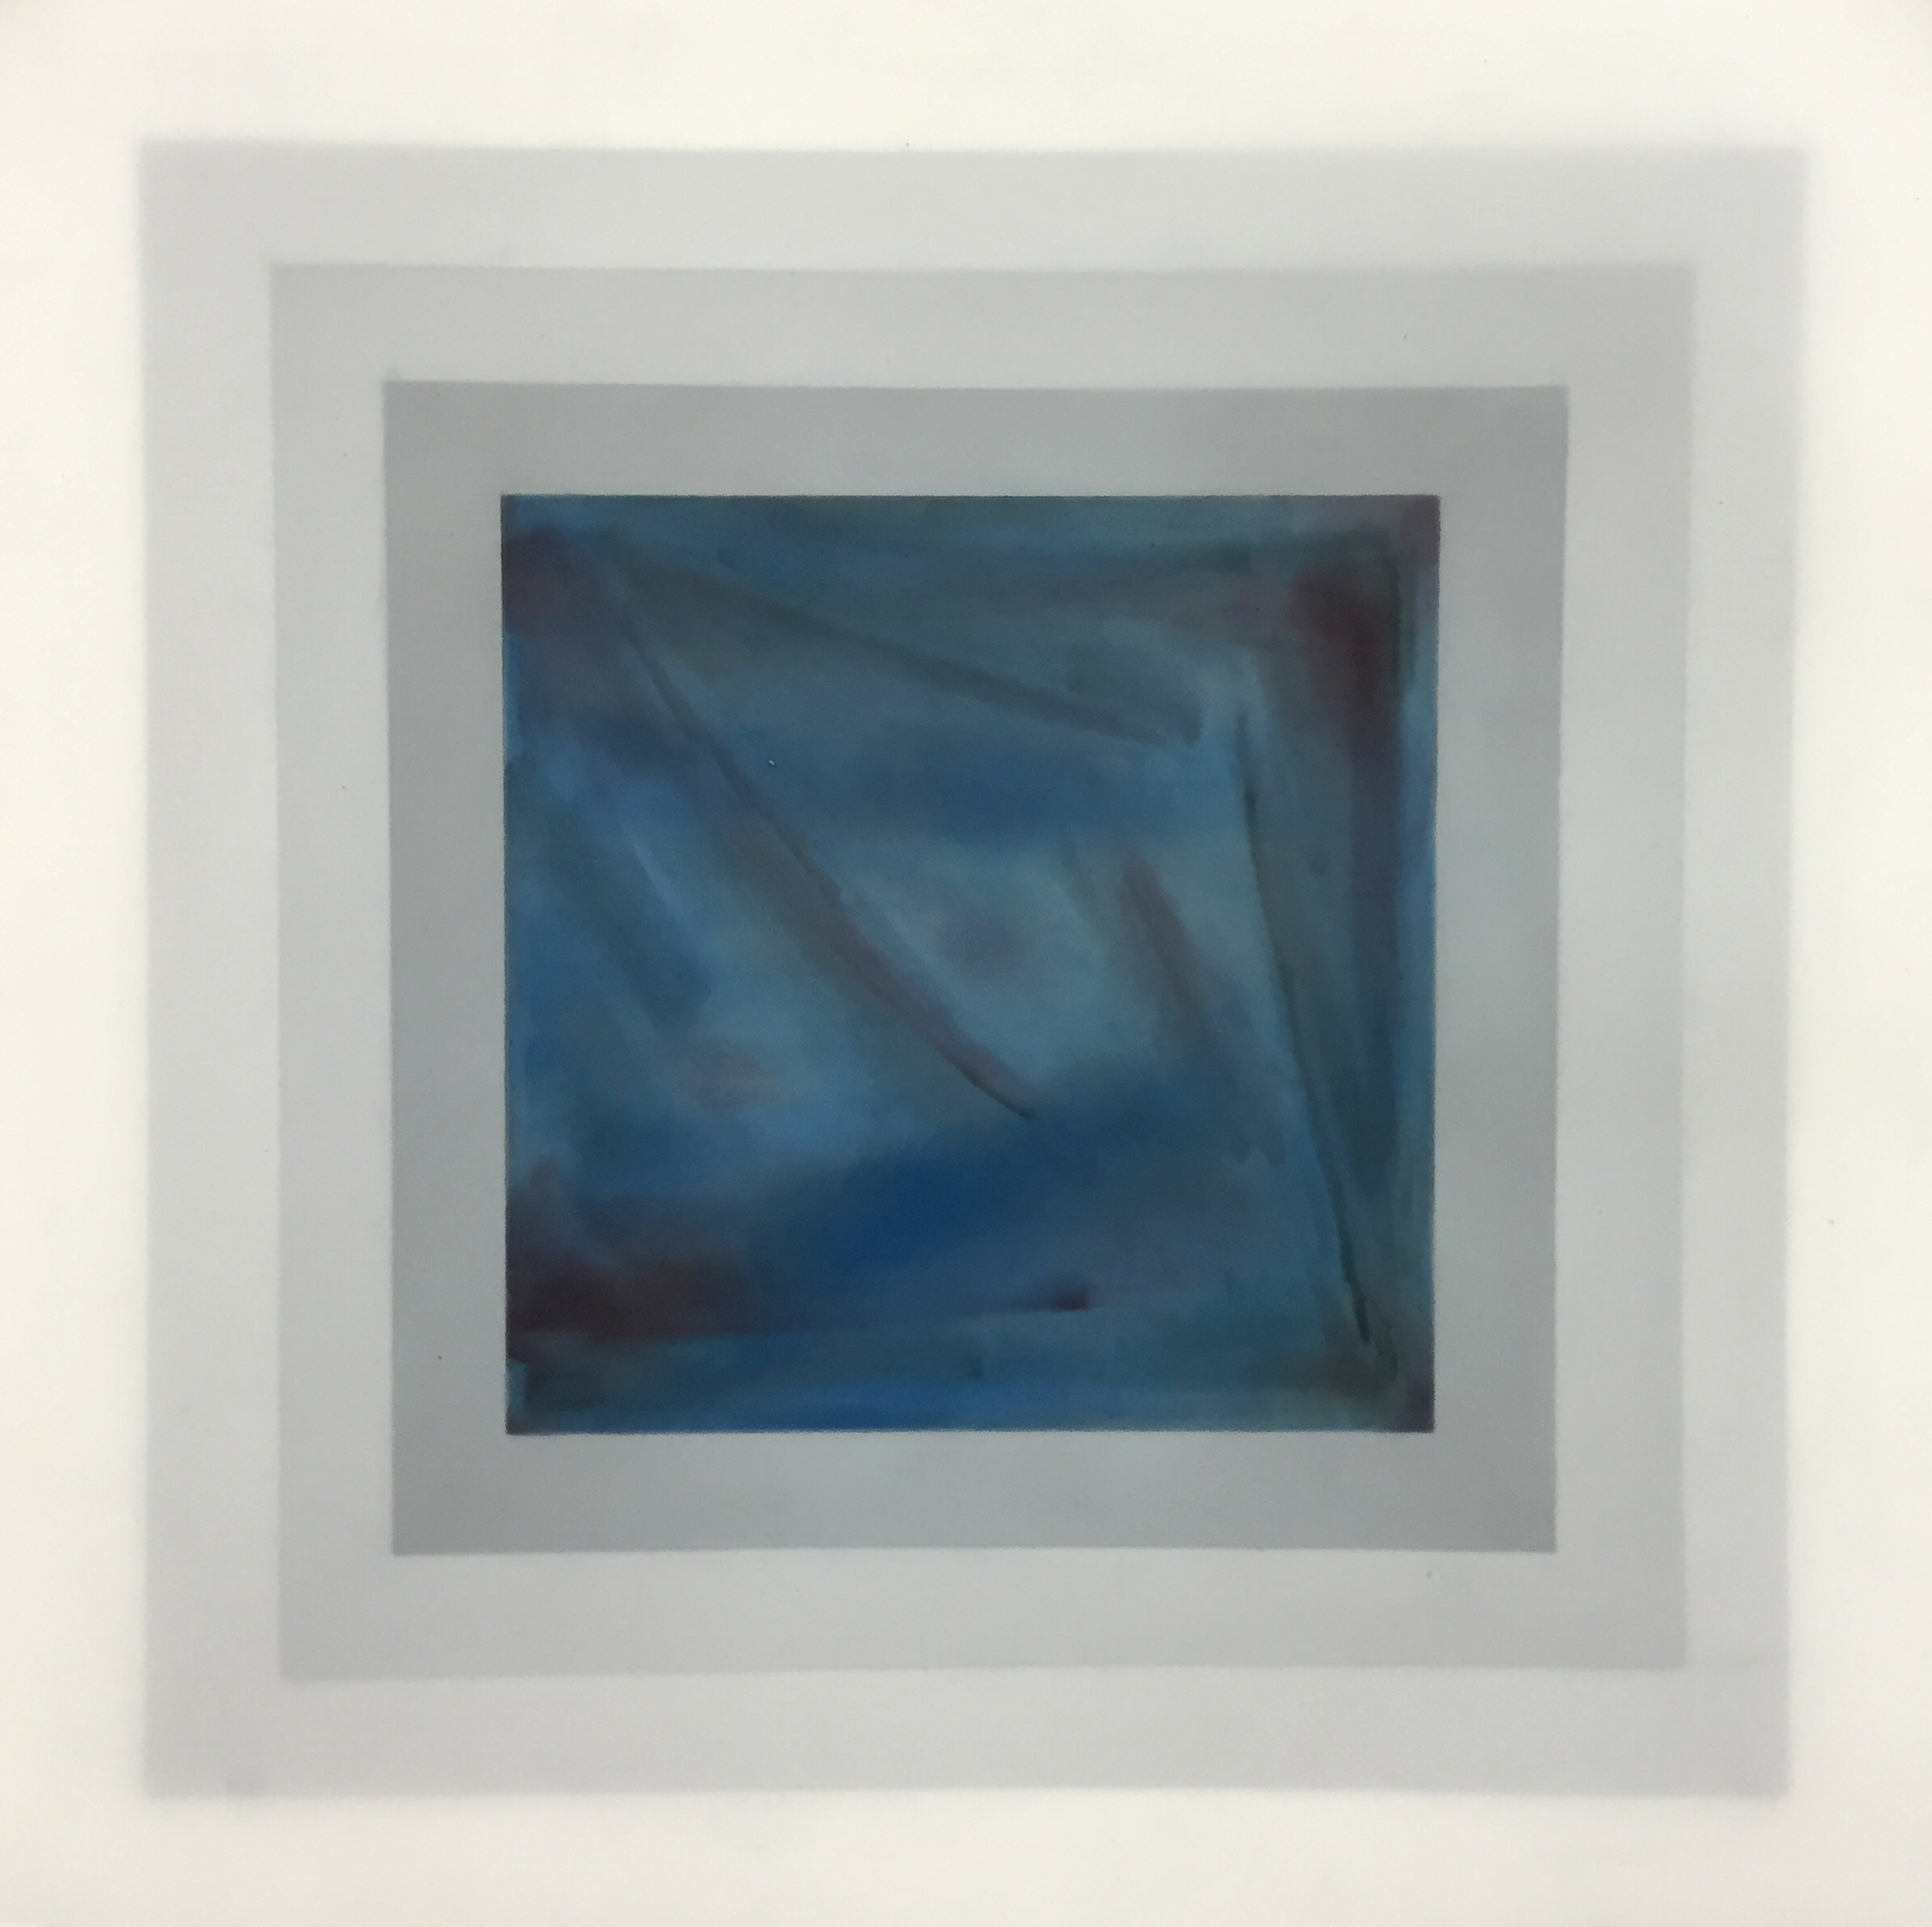 "Beyond nothingness, 2016   Pan pastel on four layers of frosted Mylar, 18"" x 18"